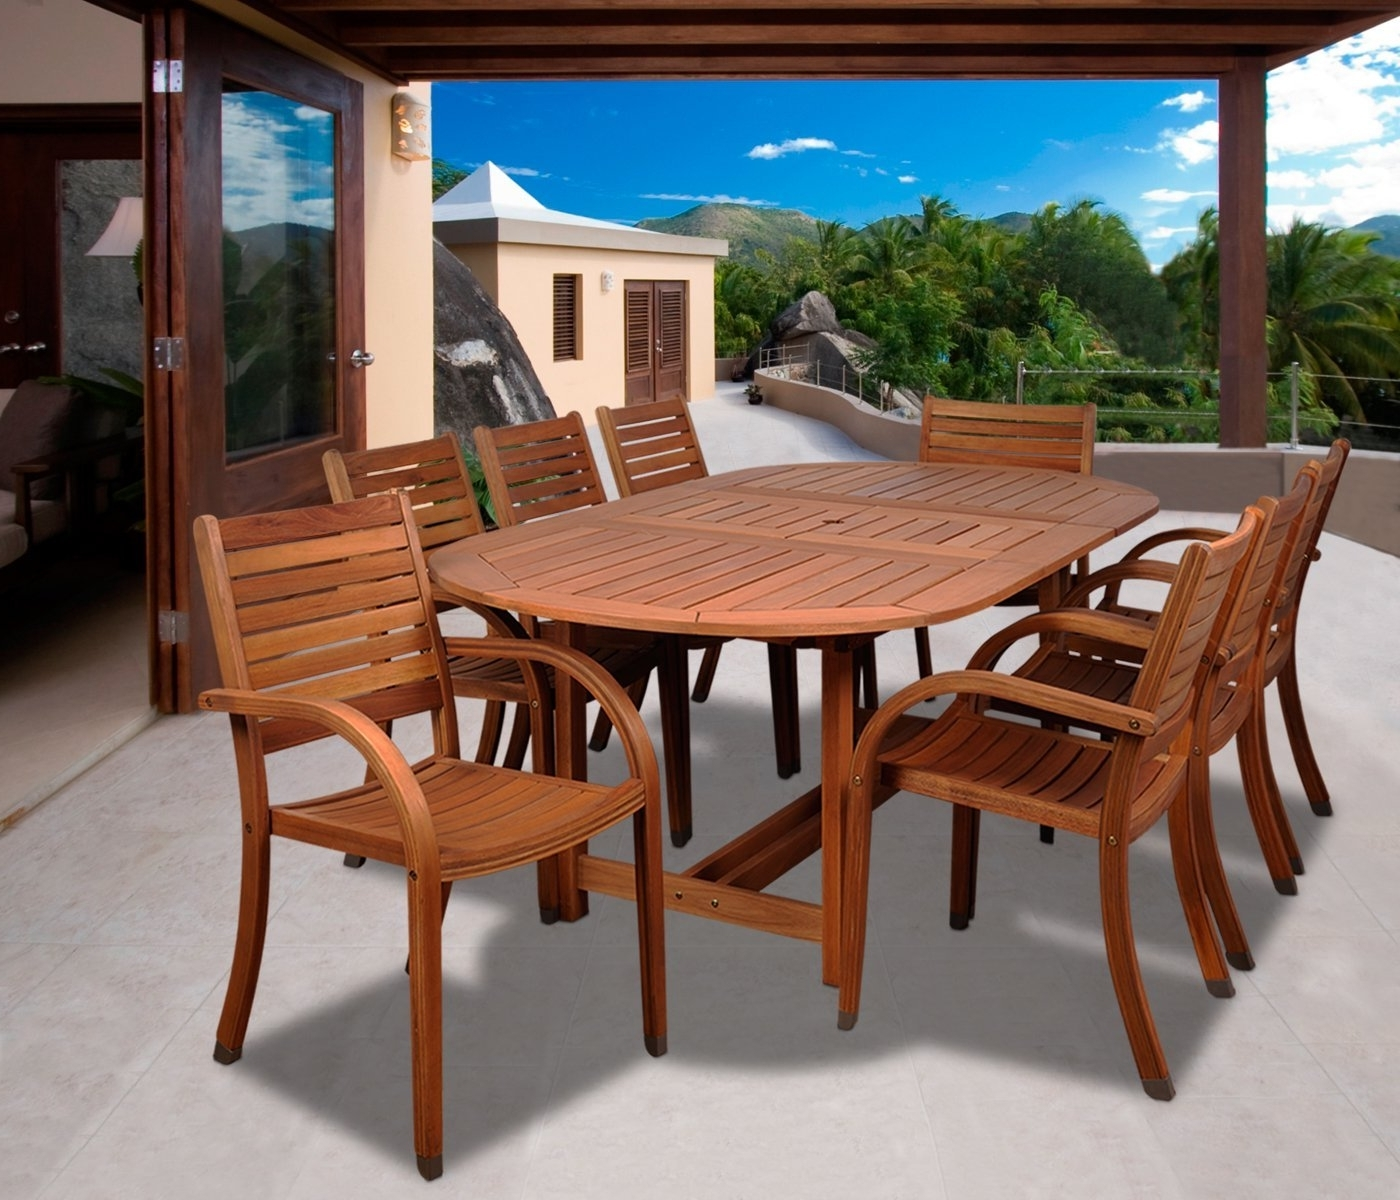 Well Known Outdoor Extendable Dining Tables In Best Eucalyptus Hardwood Furniture & Patio Sets In 2018 – Teak Patio (View 23 of 25)